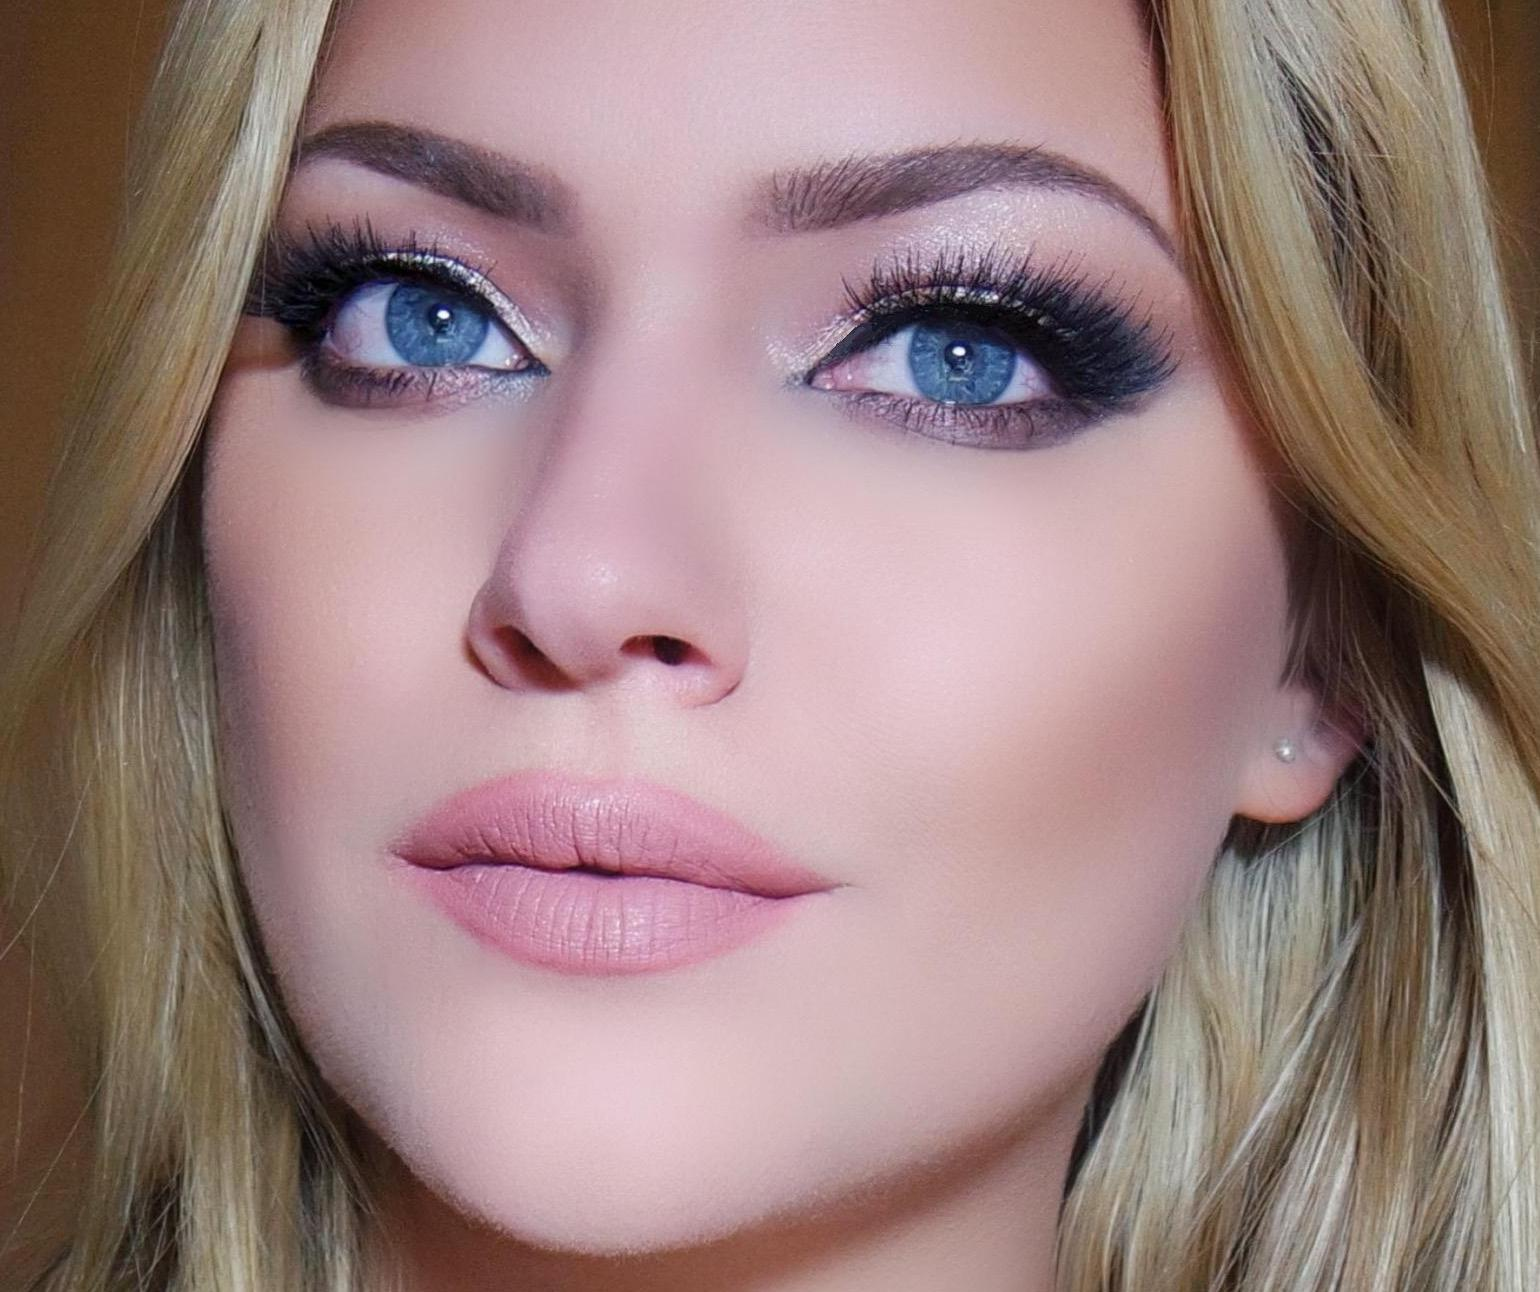 Makeup by Myrna - Beauty Blog: Easy & wearable smokey eye for ...